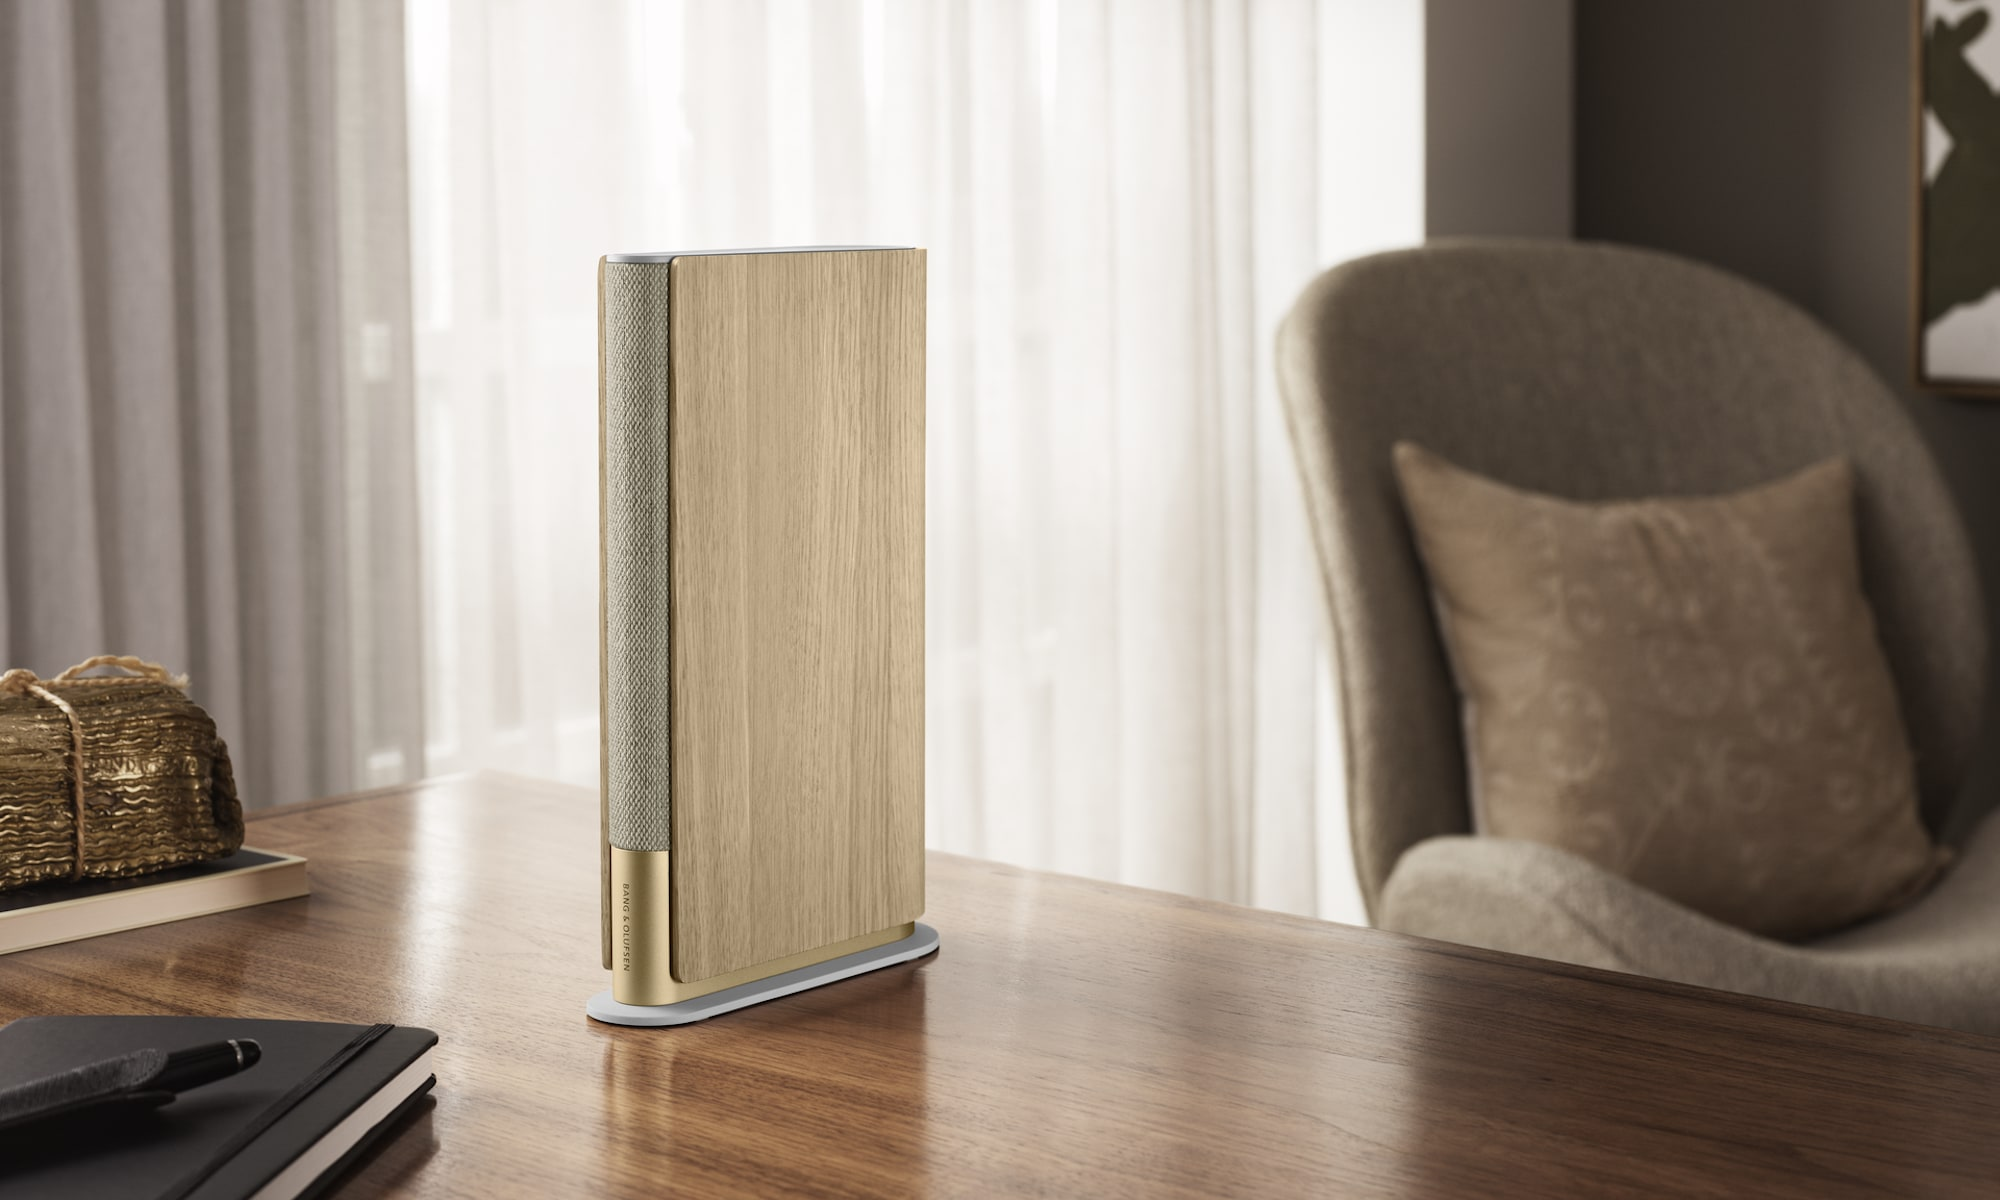 The new Bang & Olufsen speaker can actually fit into your bookshelf